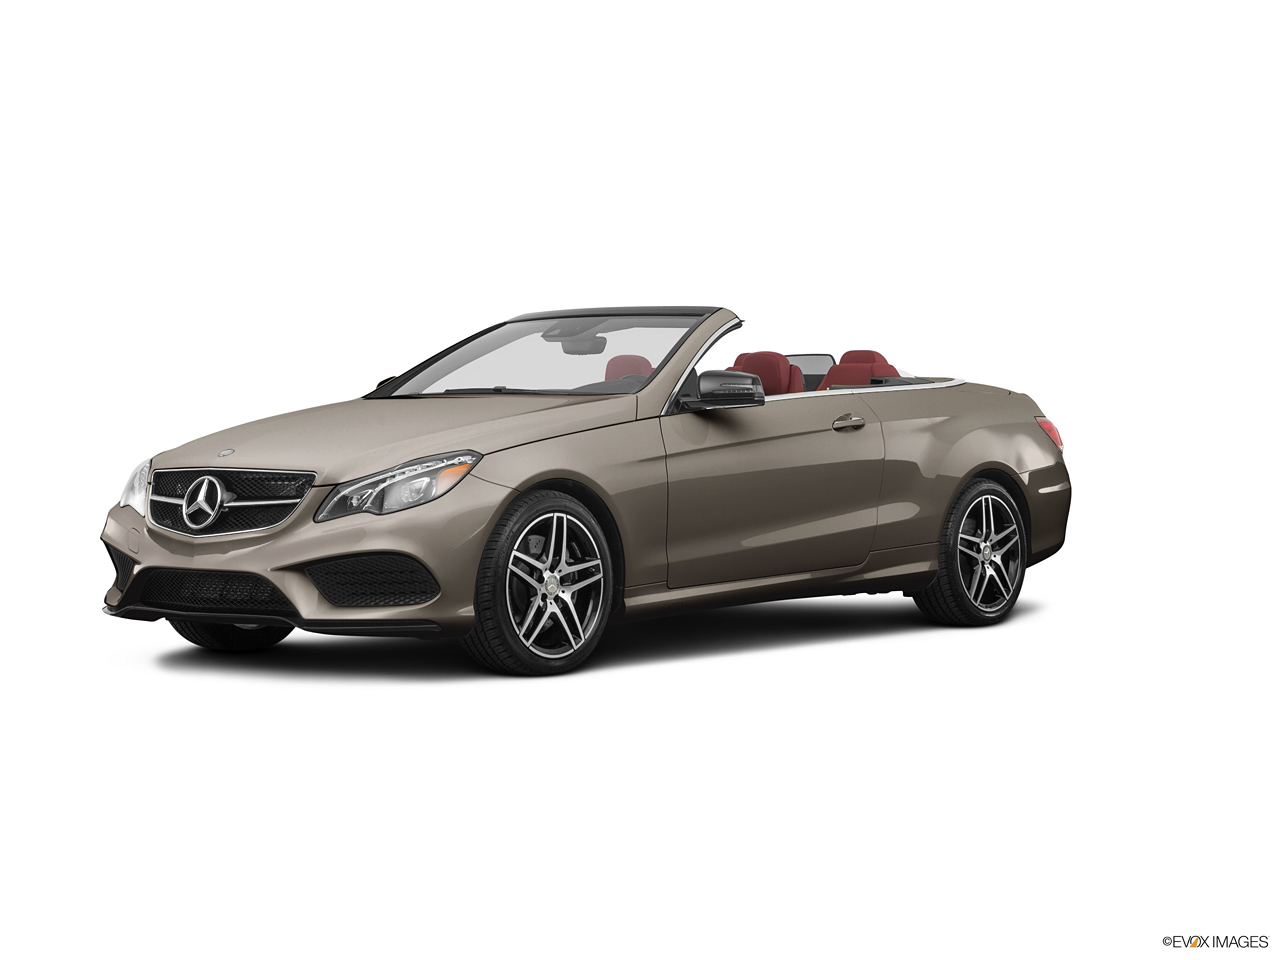 Car pictures list for mercedes benz e class cabriolet 2016 for Mercedes benz bahrain